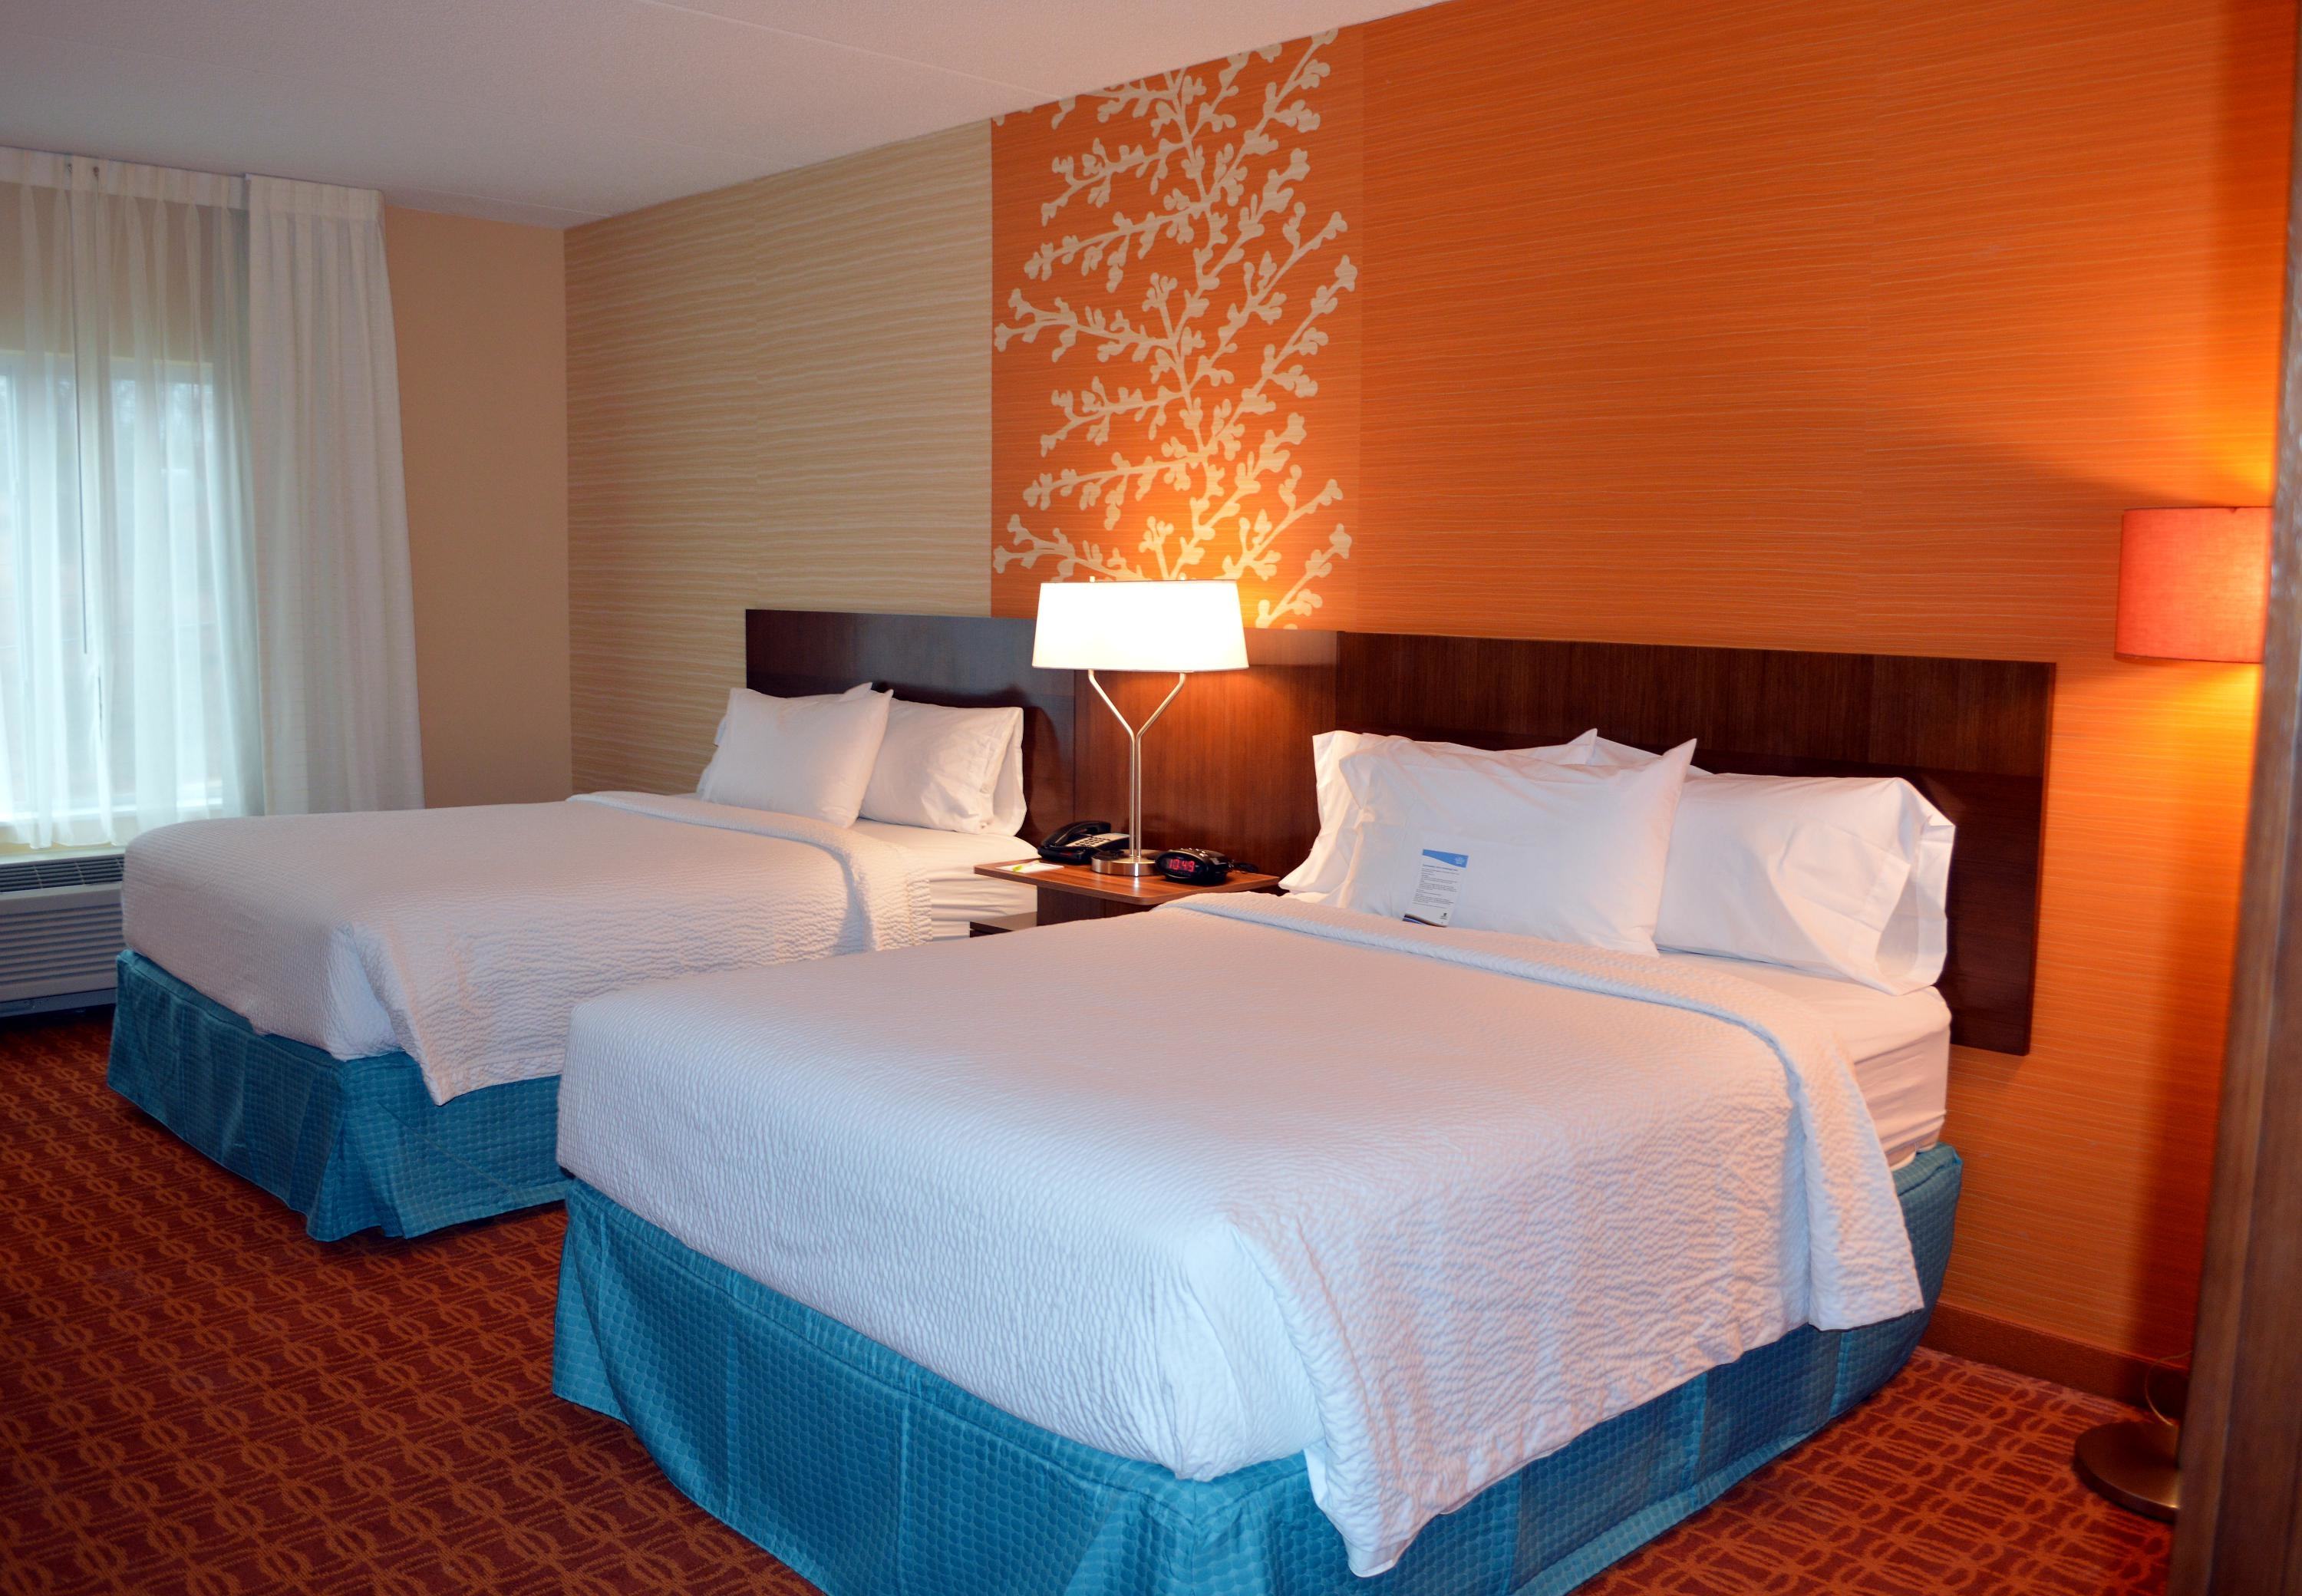 Fairfield Inn & Suites by Marriott Quantico Stafford image 15